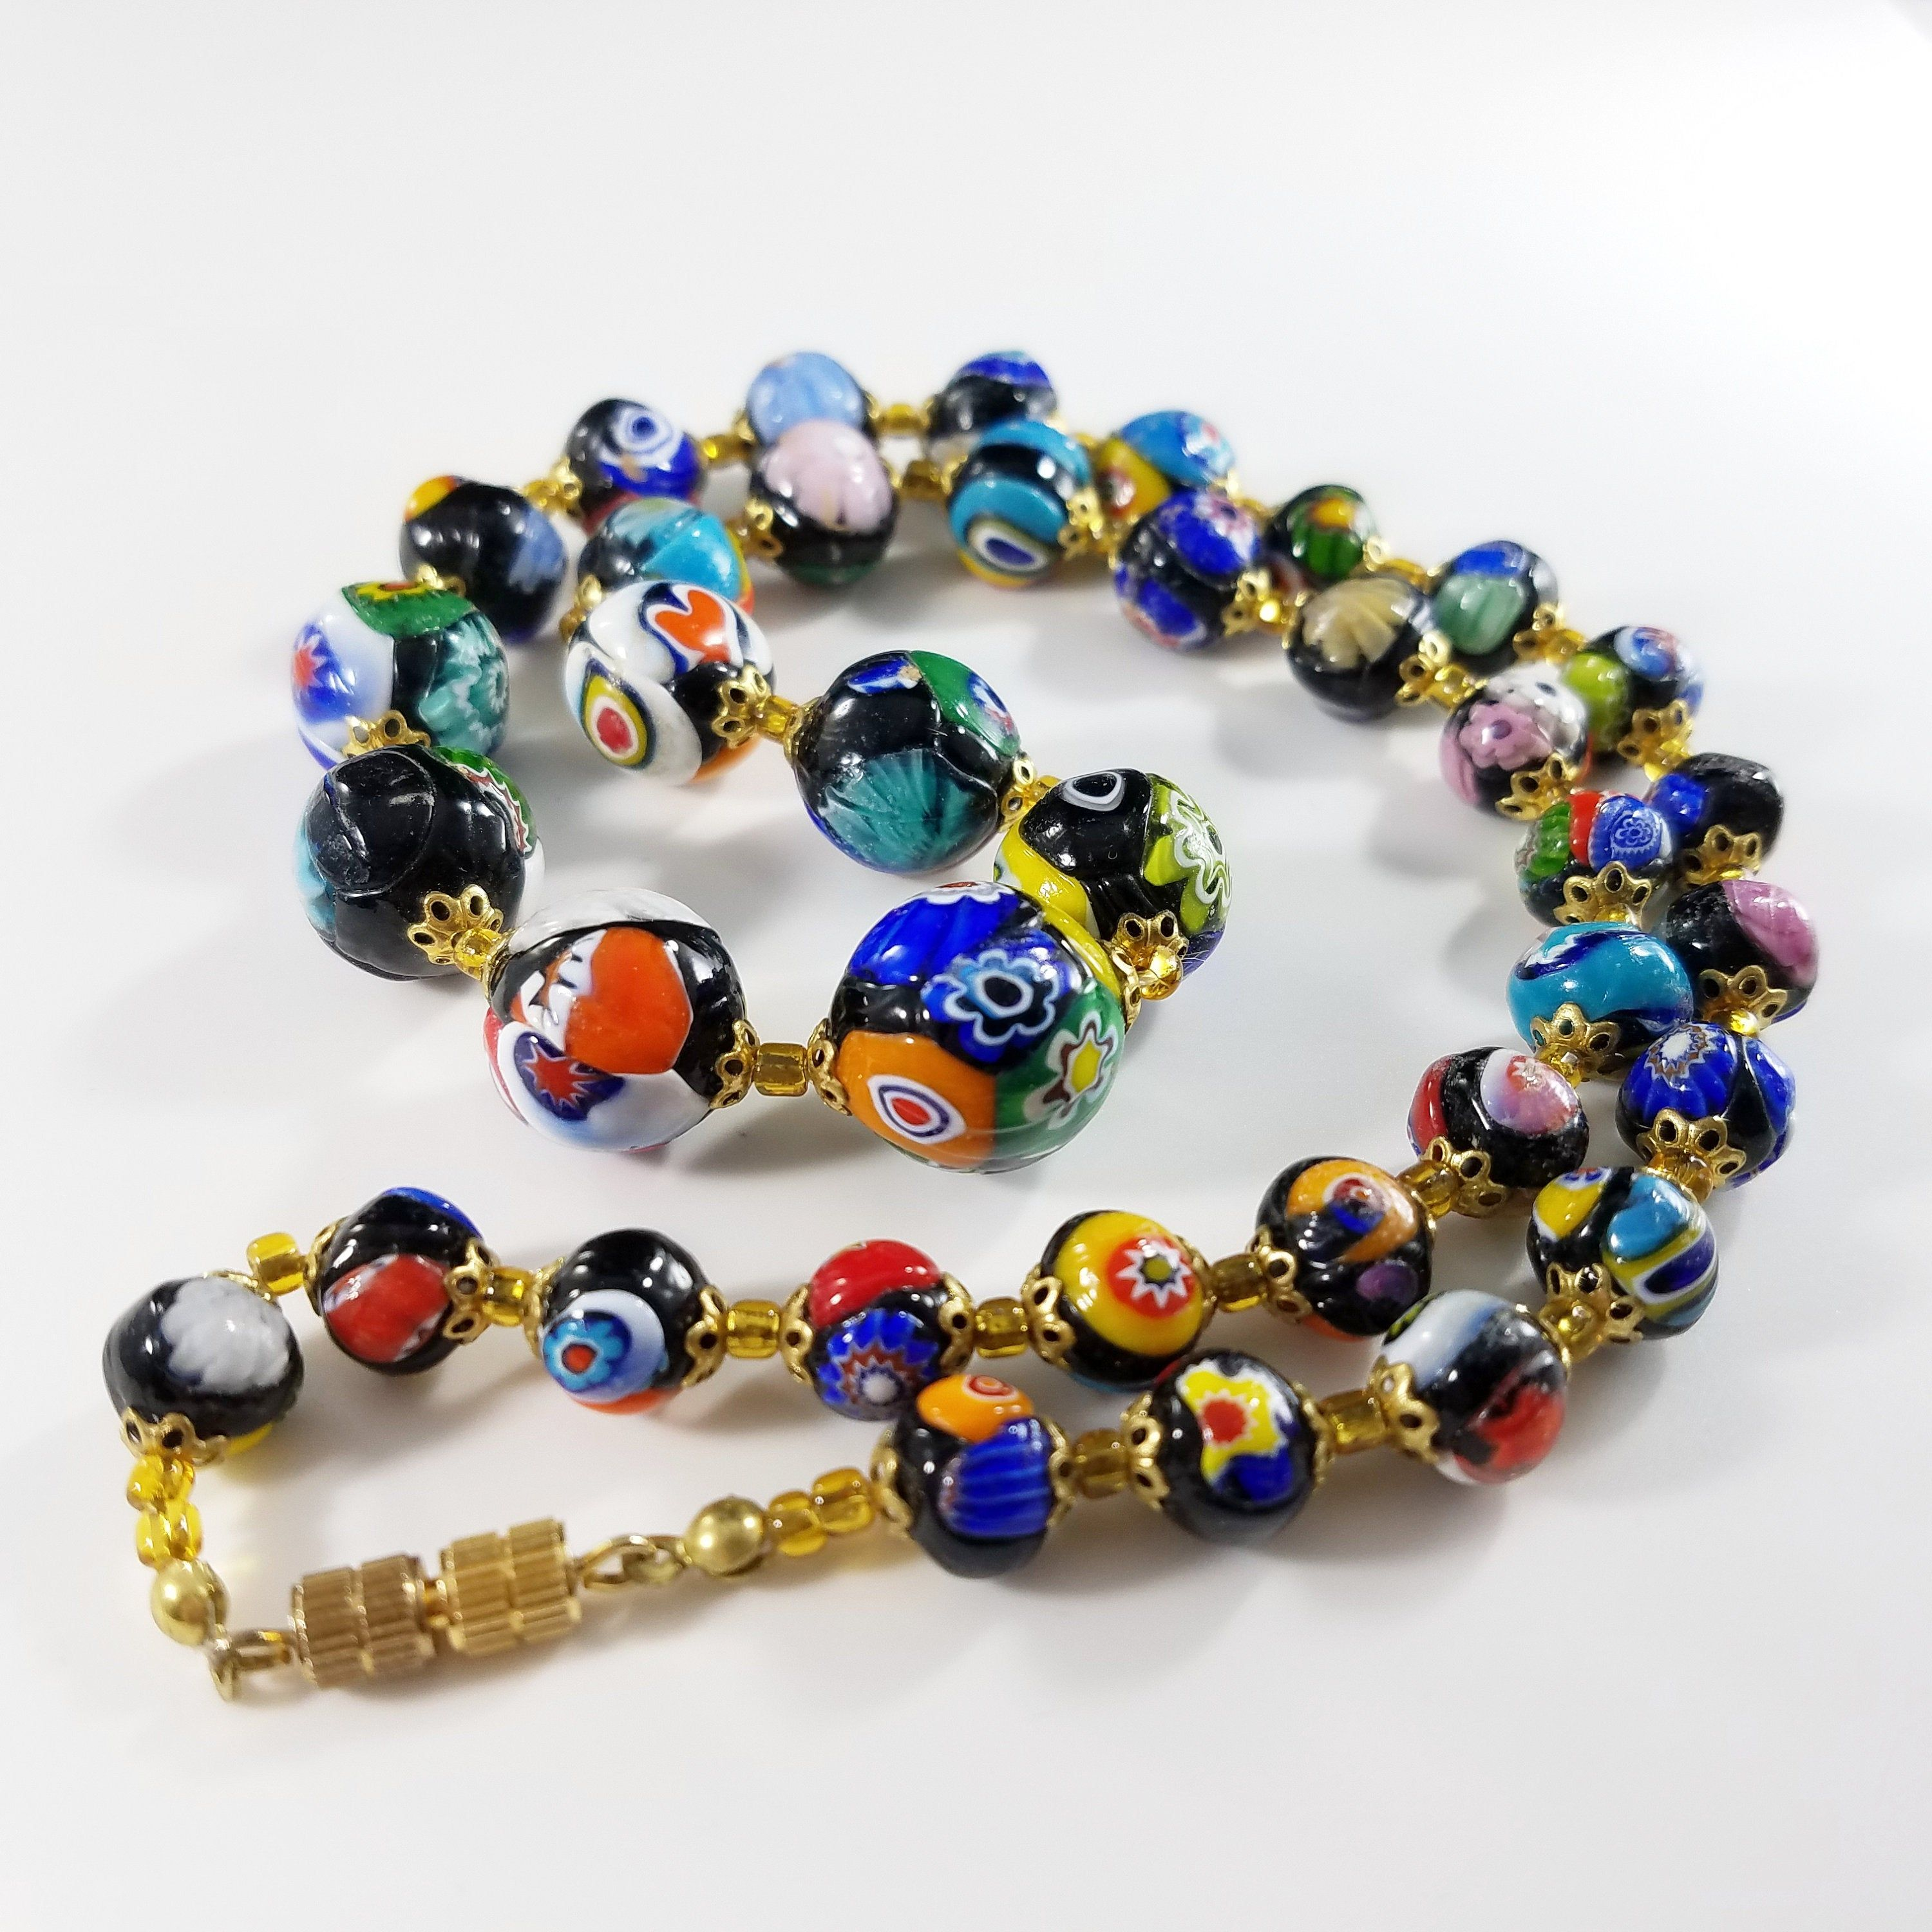 special very old A vintage Murano glass bead